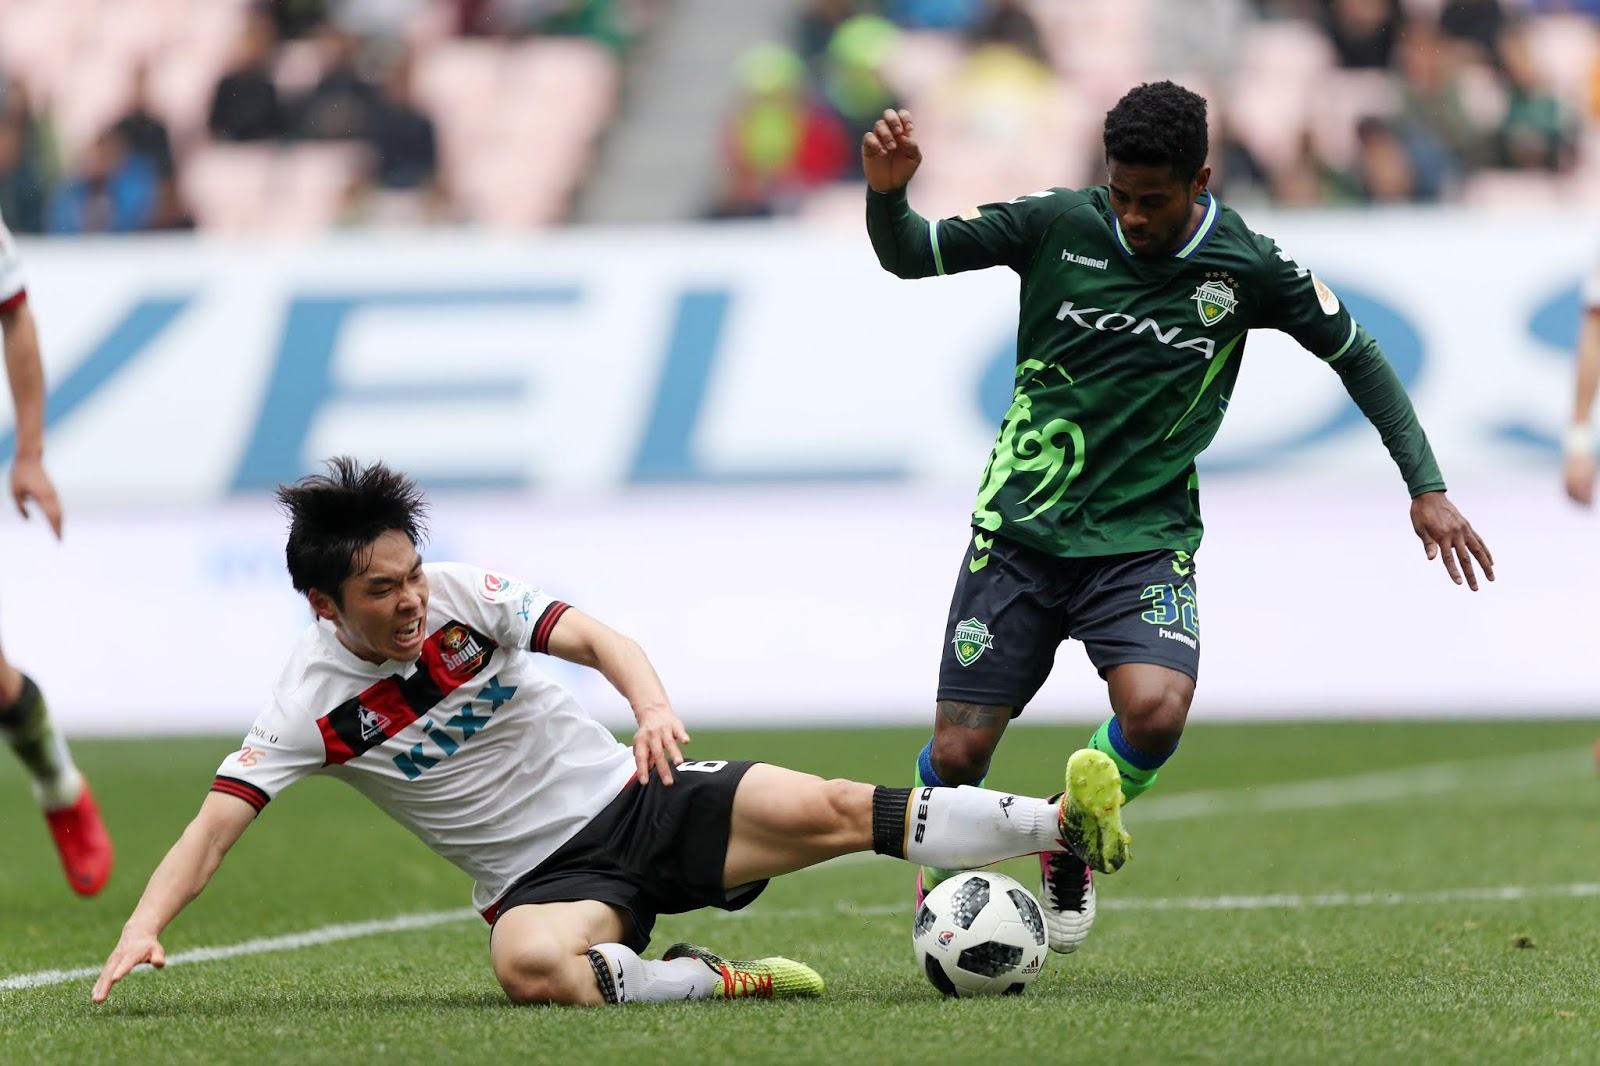 Preview: FC Seoul Vs Jeonbuk Hyundai Motors K League 1 Round 14